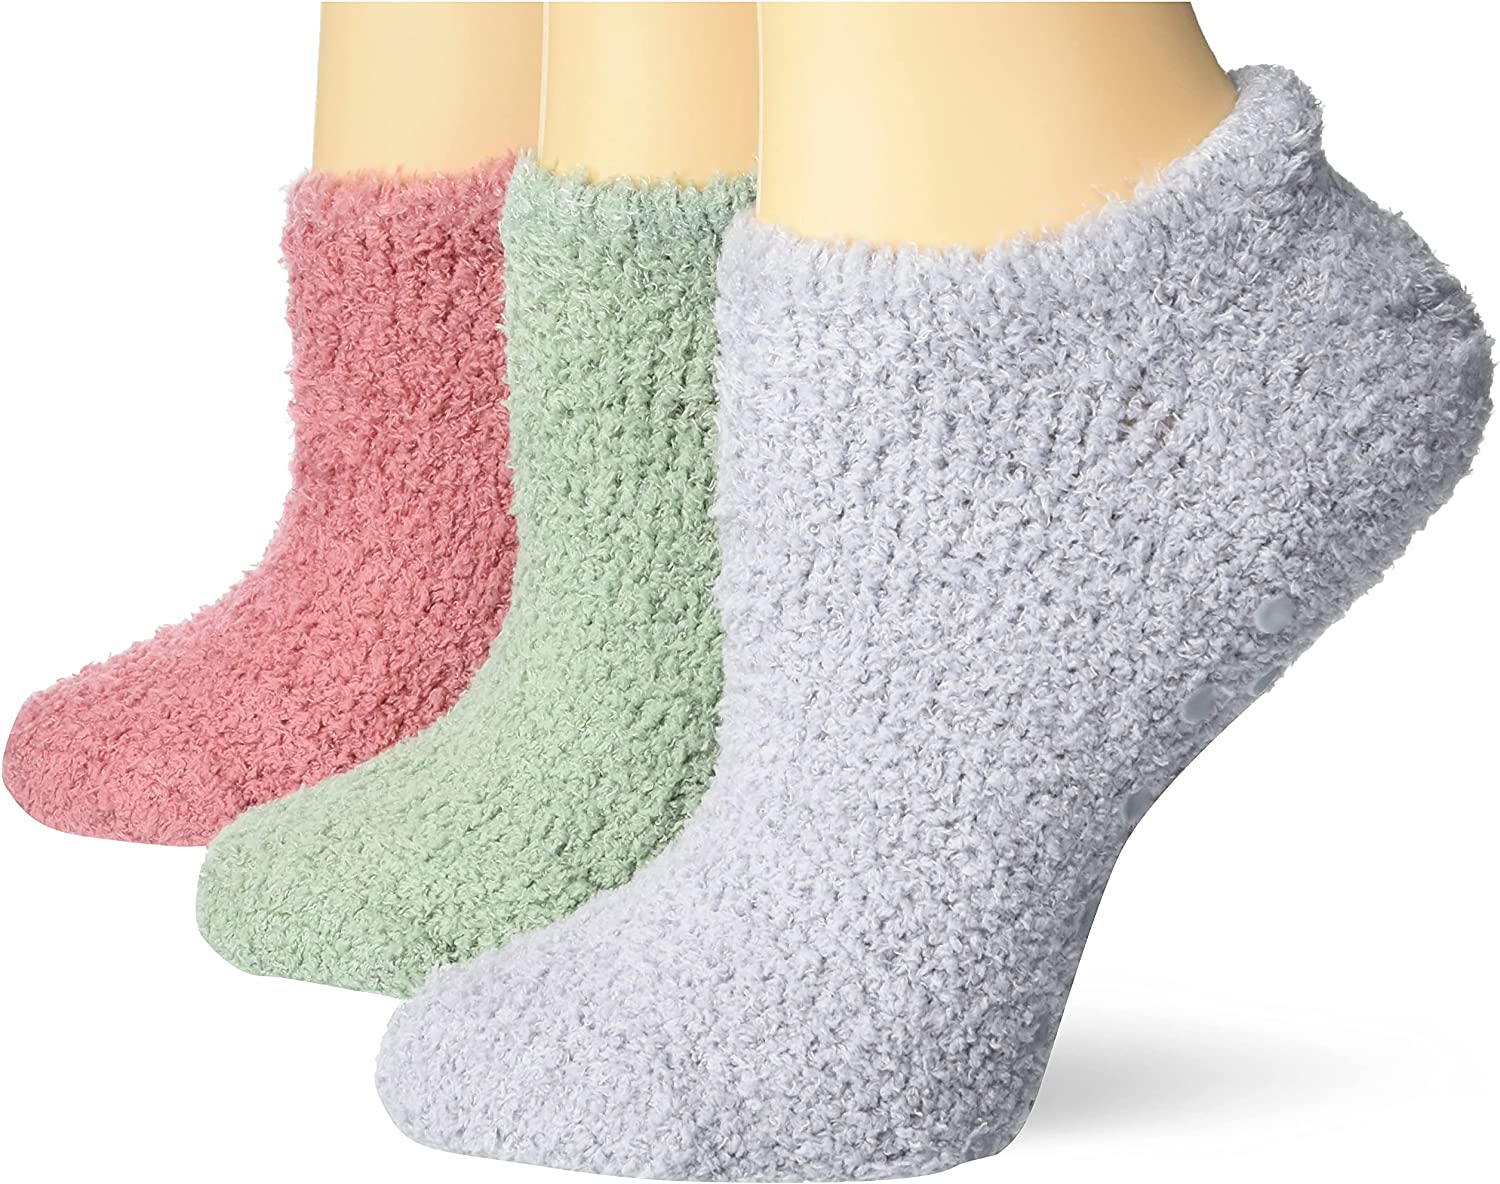 No Nonsense Women's Shortie Slipper Sock, 3 Pair Pack, Violet Grey/Cameo/Agave, 4-10